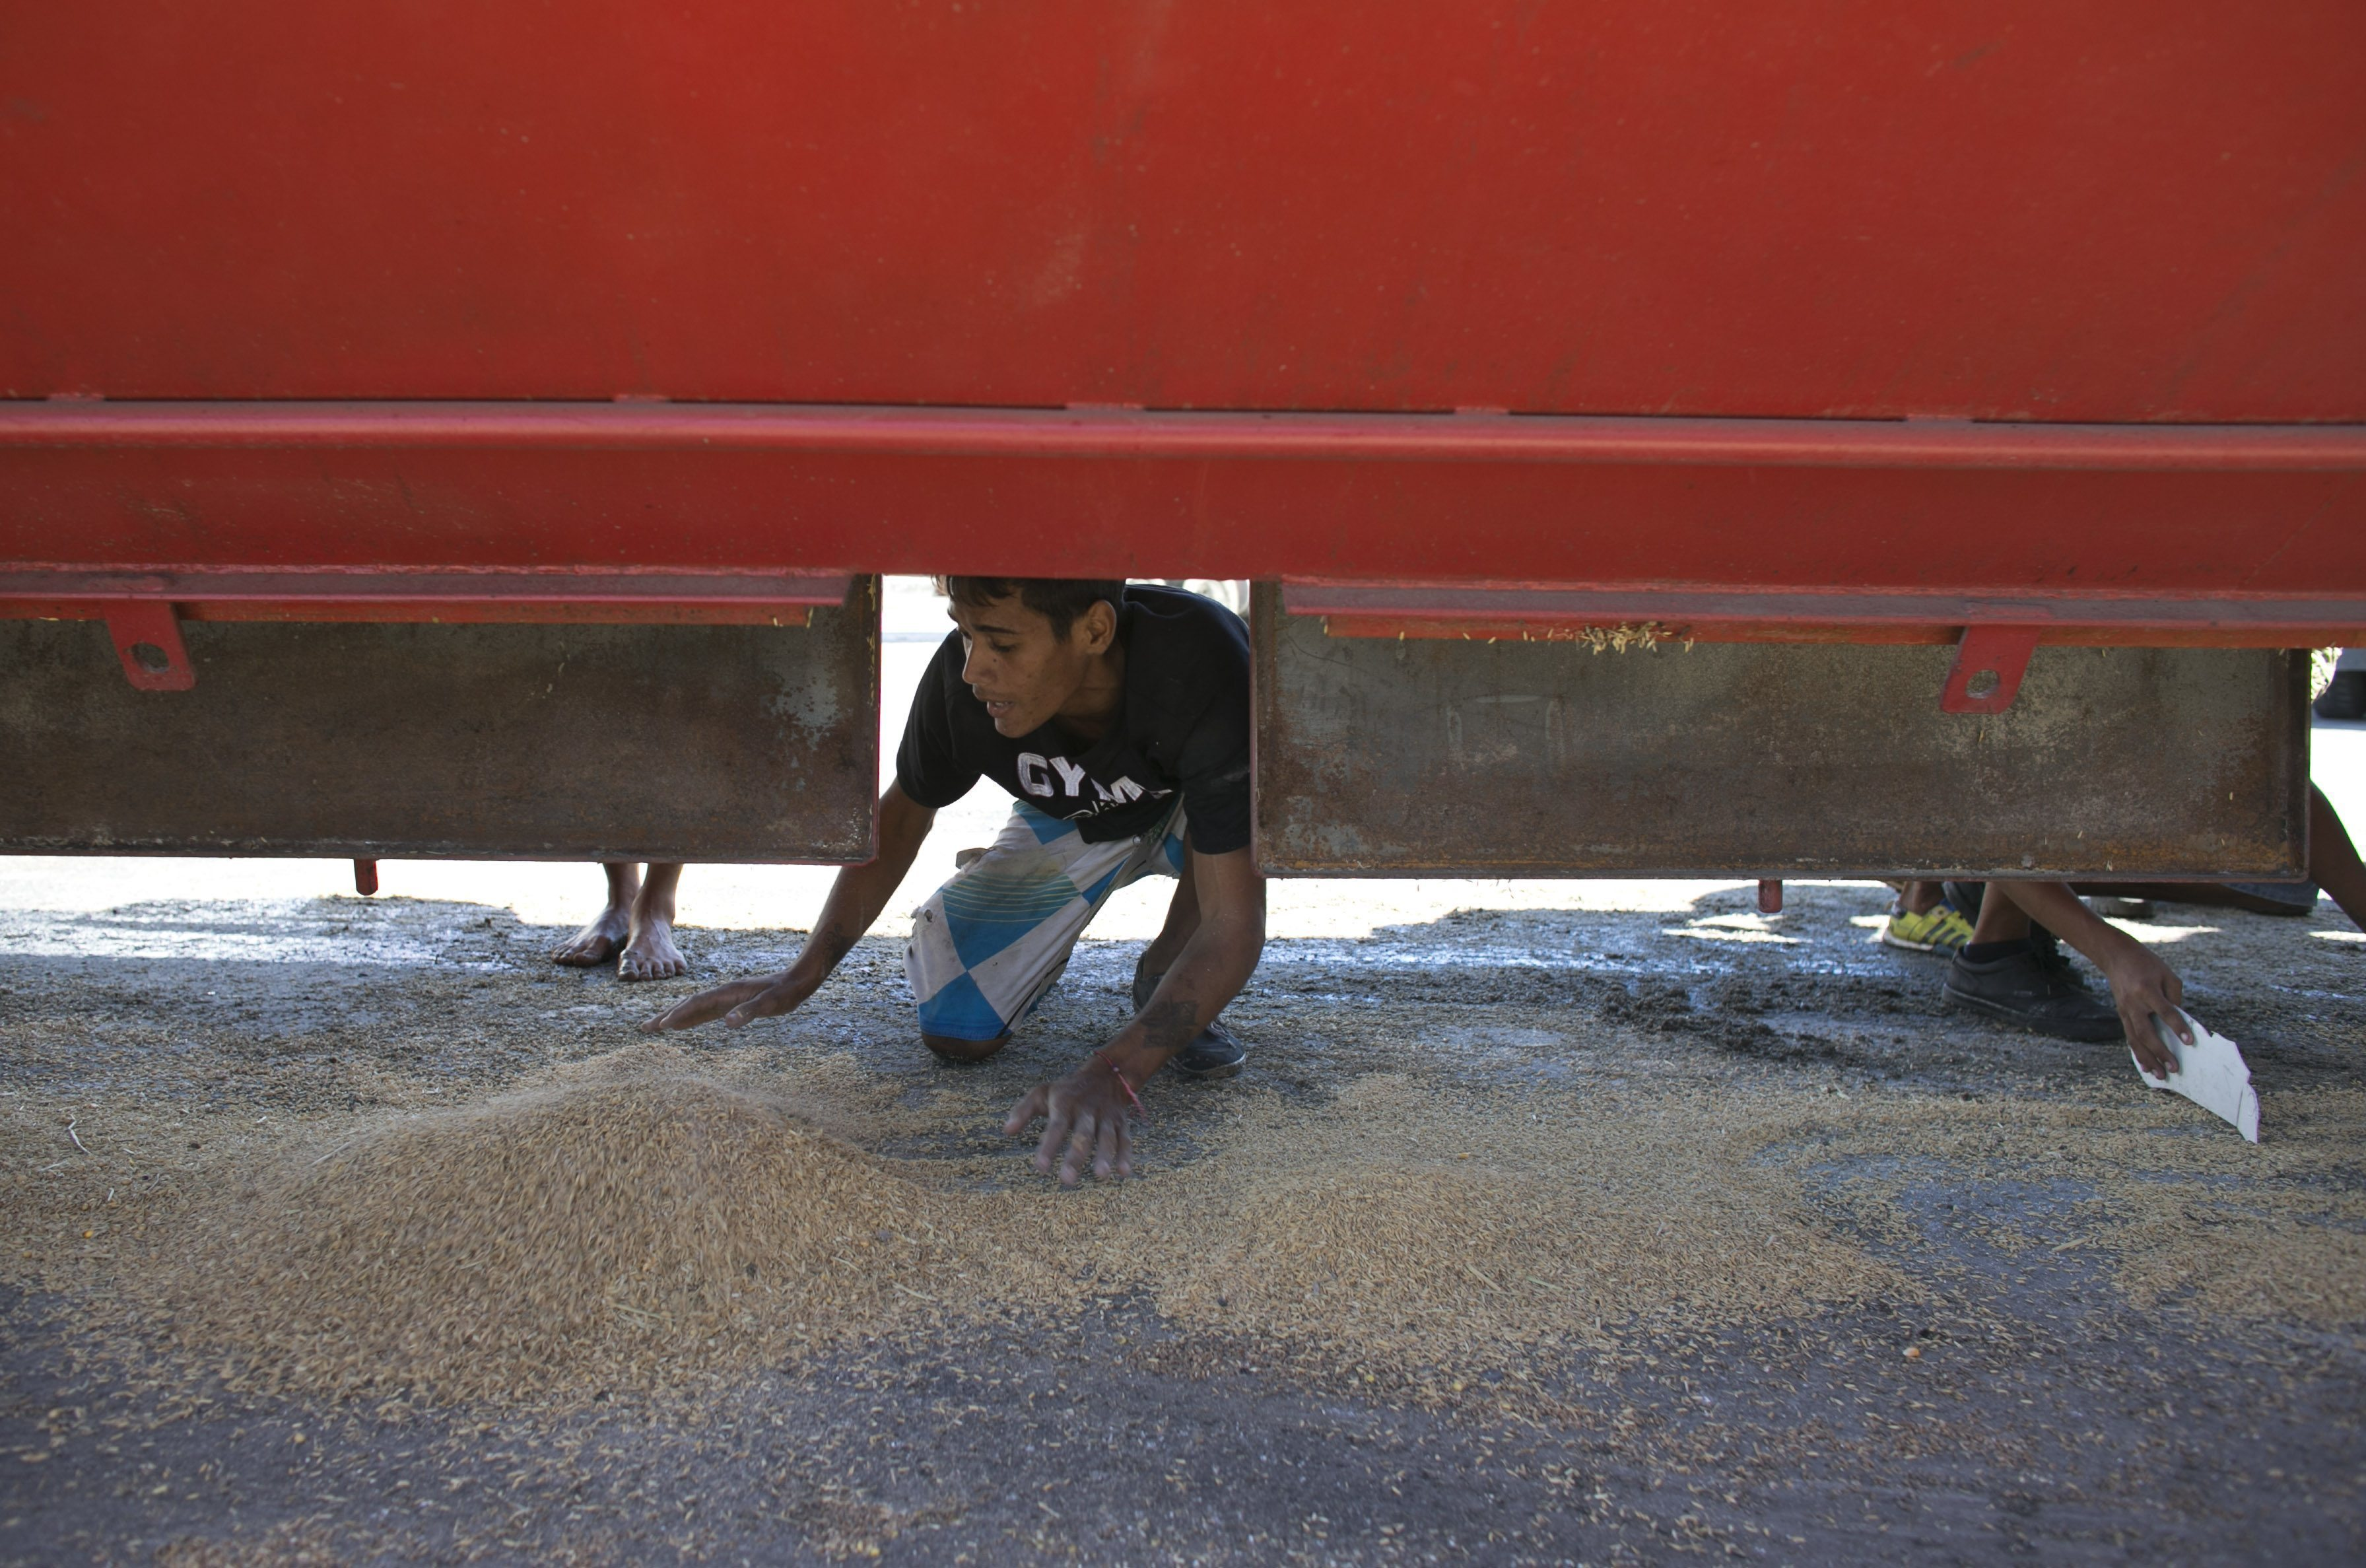 A young man collects rice that fell from a cargo truck waiting to enter the port and refill in Puerto Cabello, Venezuela on Nov. 14, 2016. (AP Photo/Ariana Cubillos)